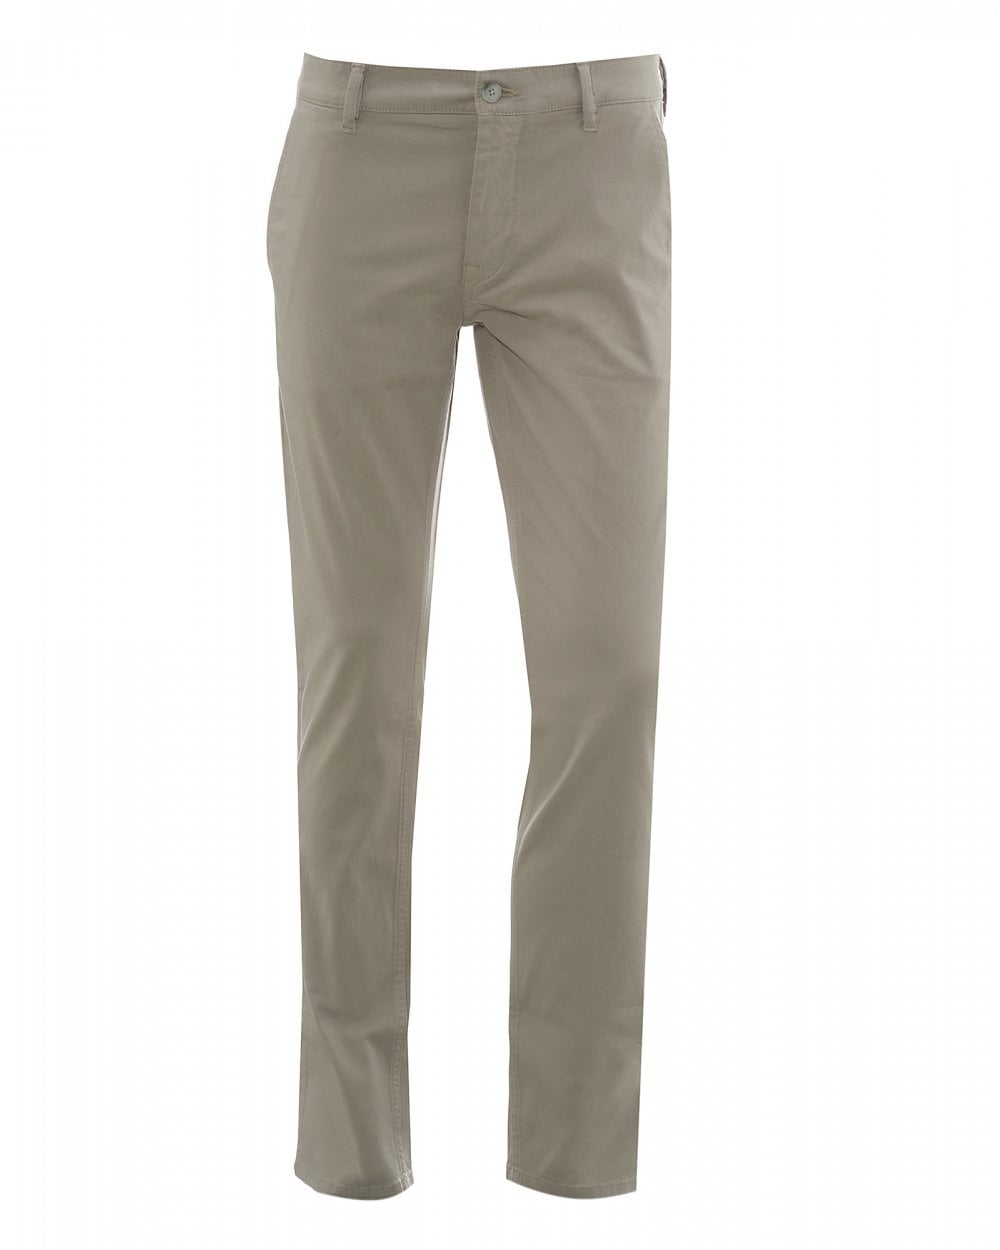 super cheap compares to reliable reputation on wholesale Mens Schino-Slim Light Beige Slim Fit Chino Trousers